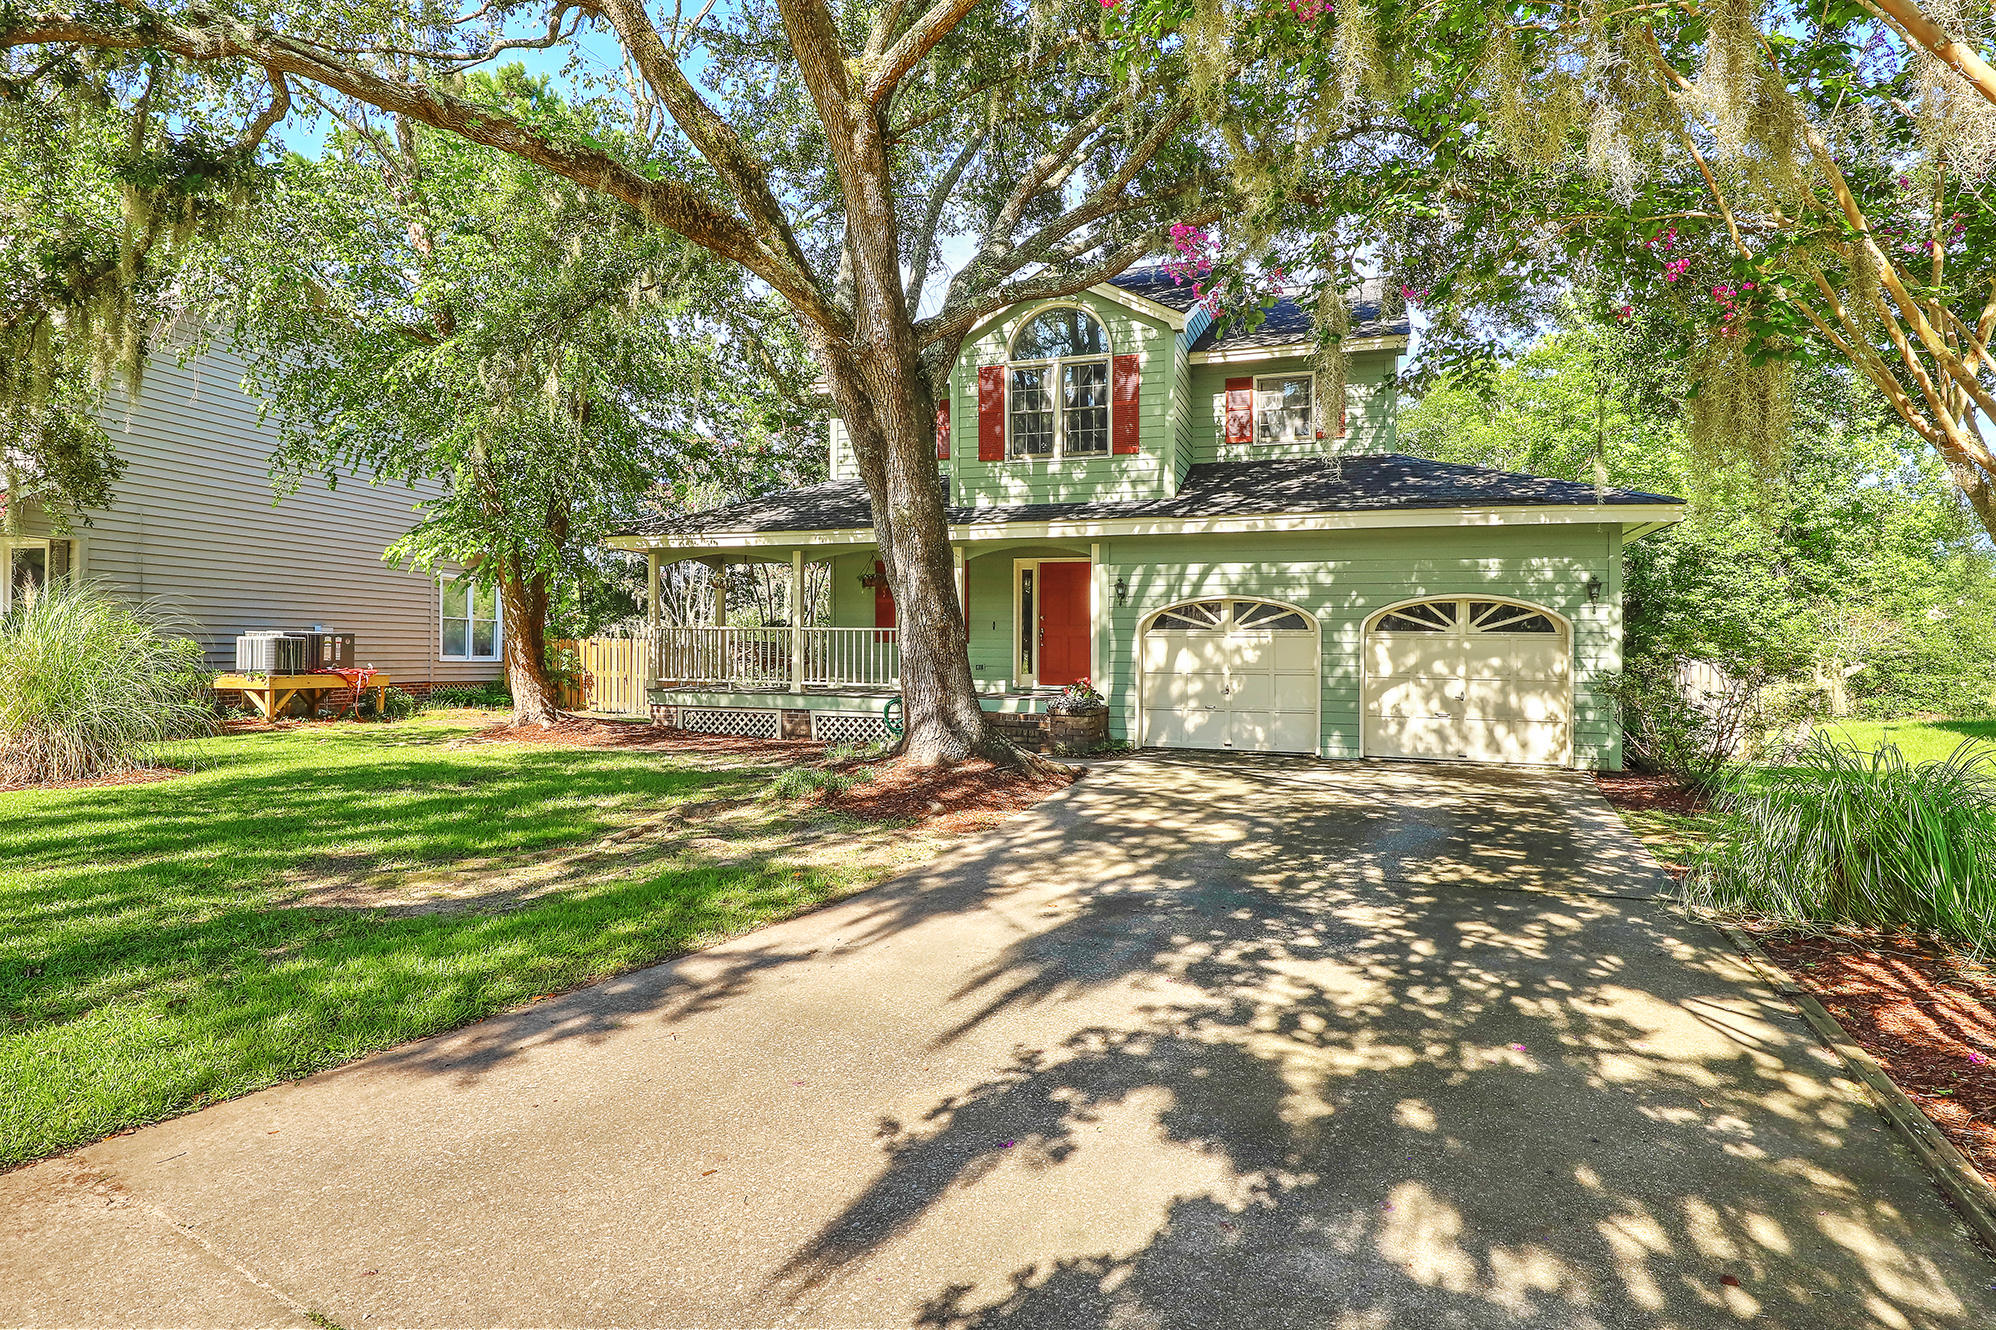 Rice Hollow Homes For Sale - 1729 Sandcroft, Charleston, SC - 6